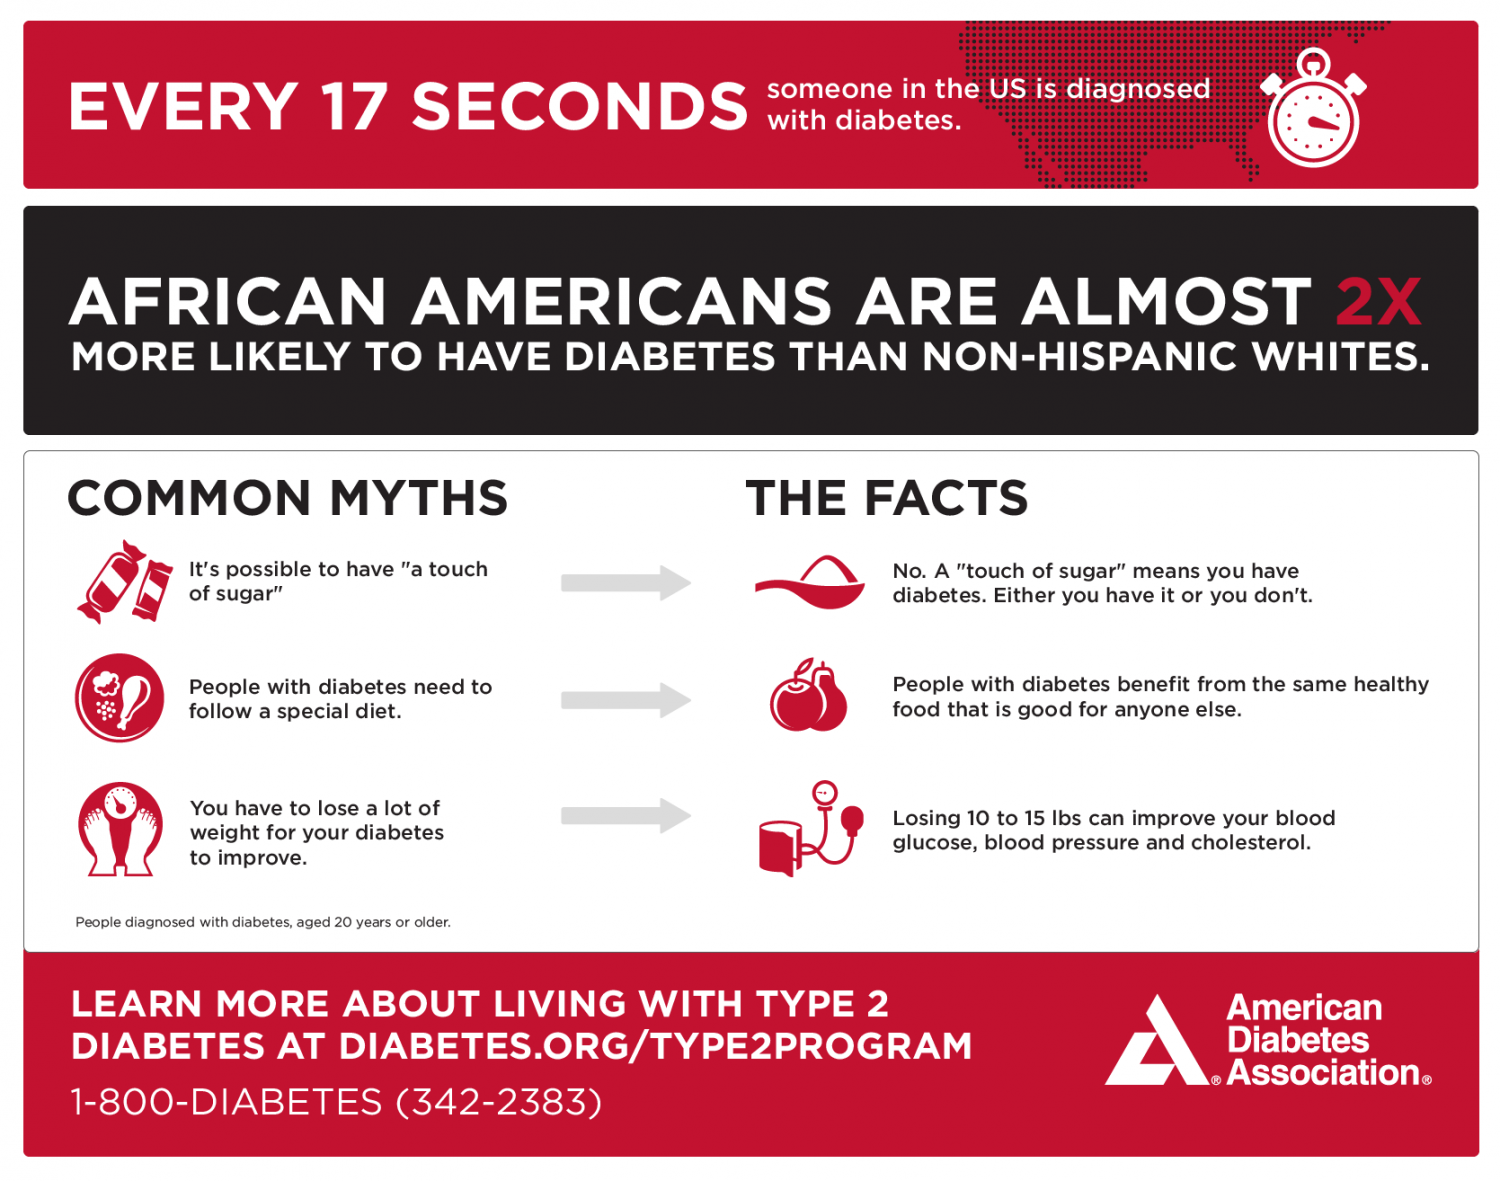 african americans and diabetes This means around 650,000 african americans in the us could have  undiagnosed type 2 diabetes if tested with the hba1c test alone.